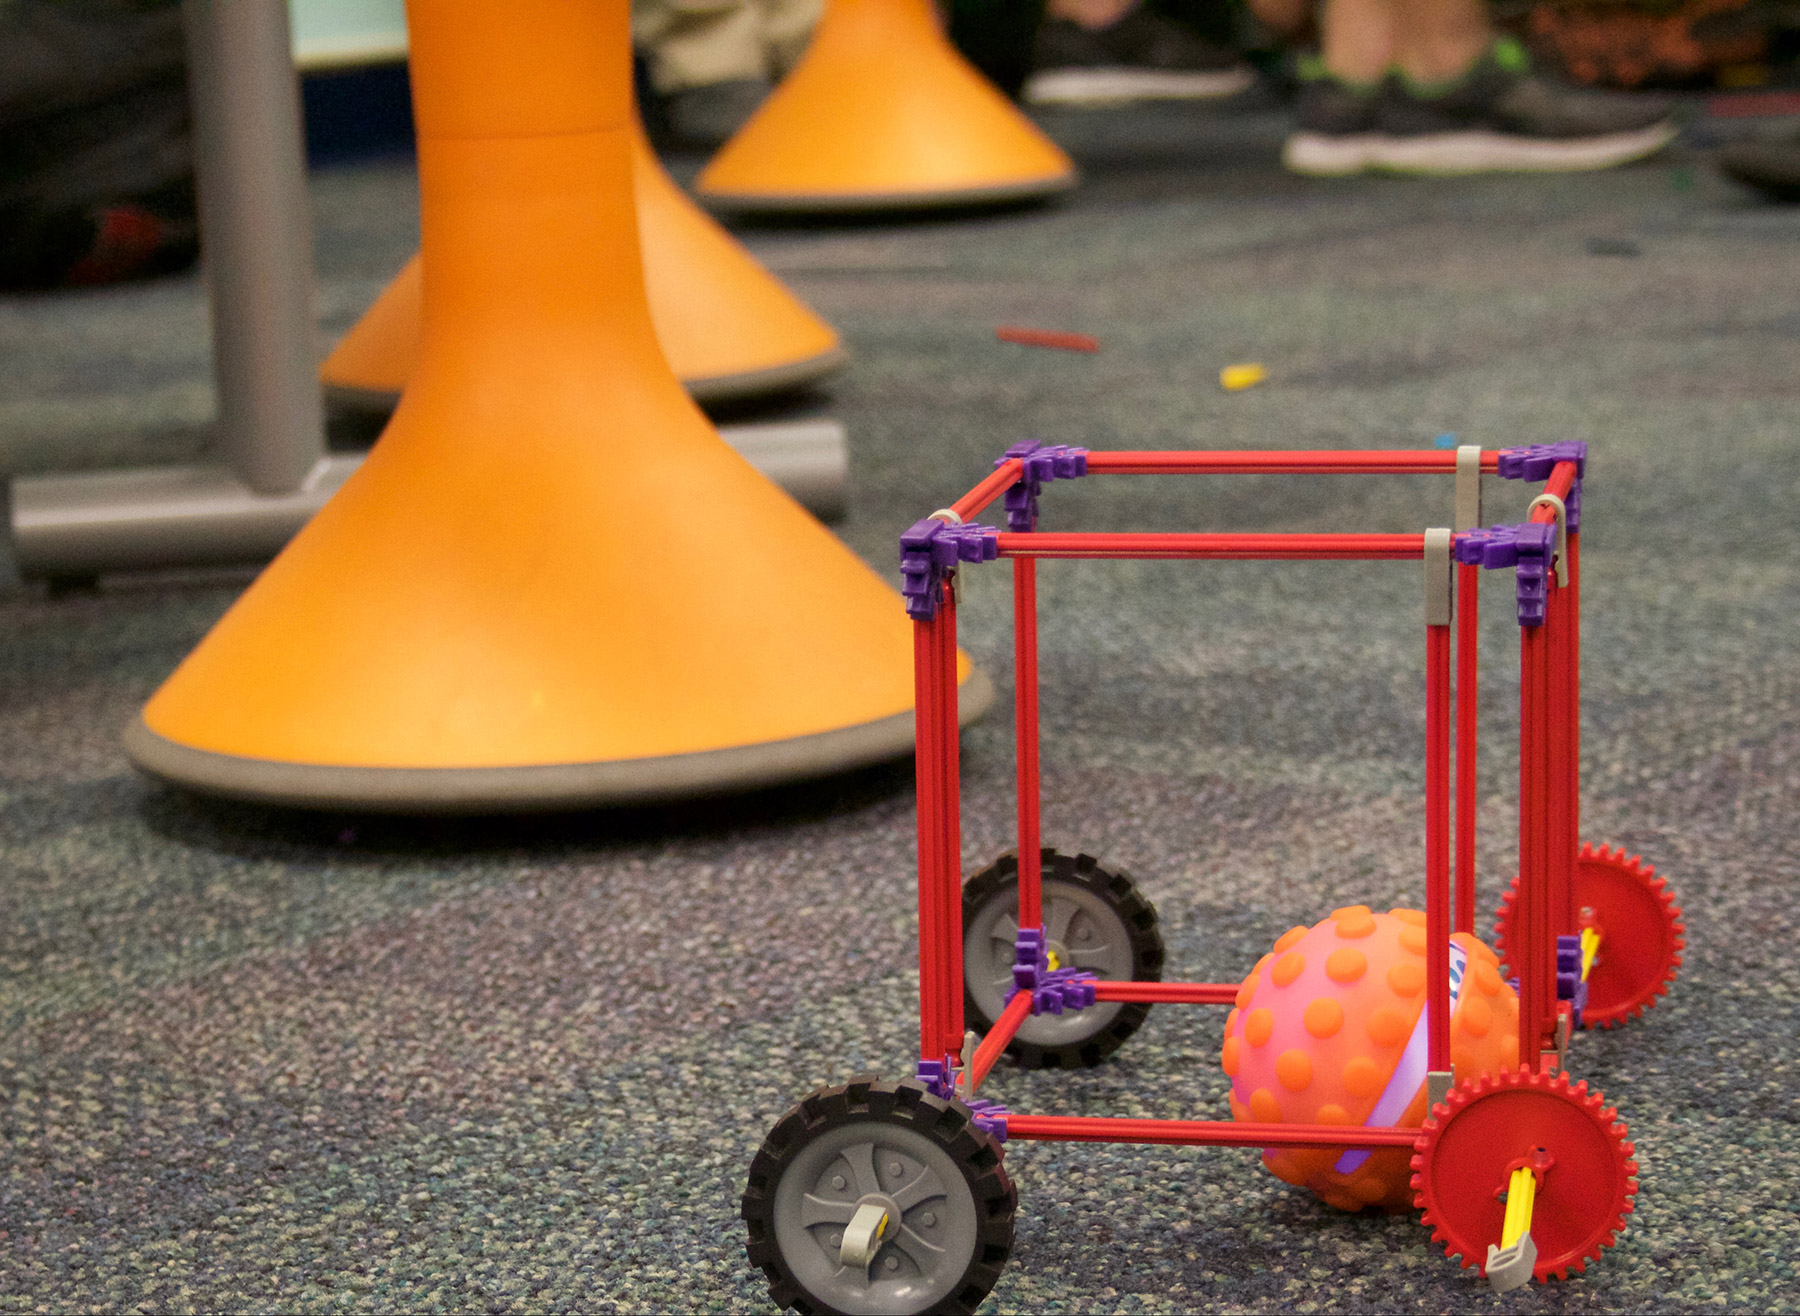 Sphero Design Challenges To Get Kids Coding And Creating In No Time